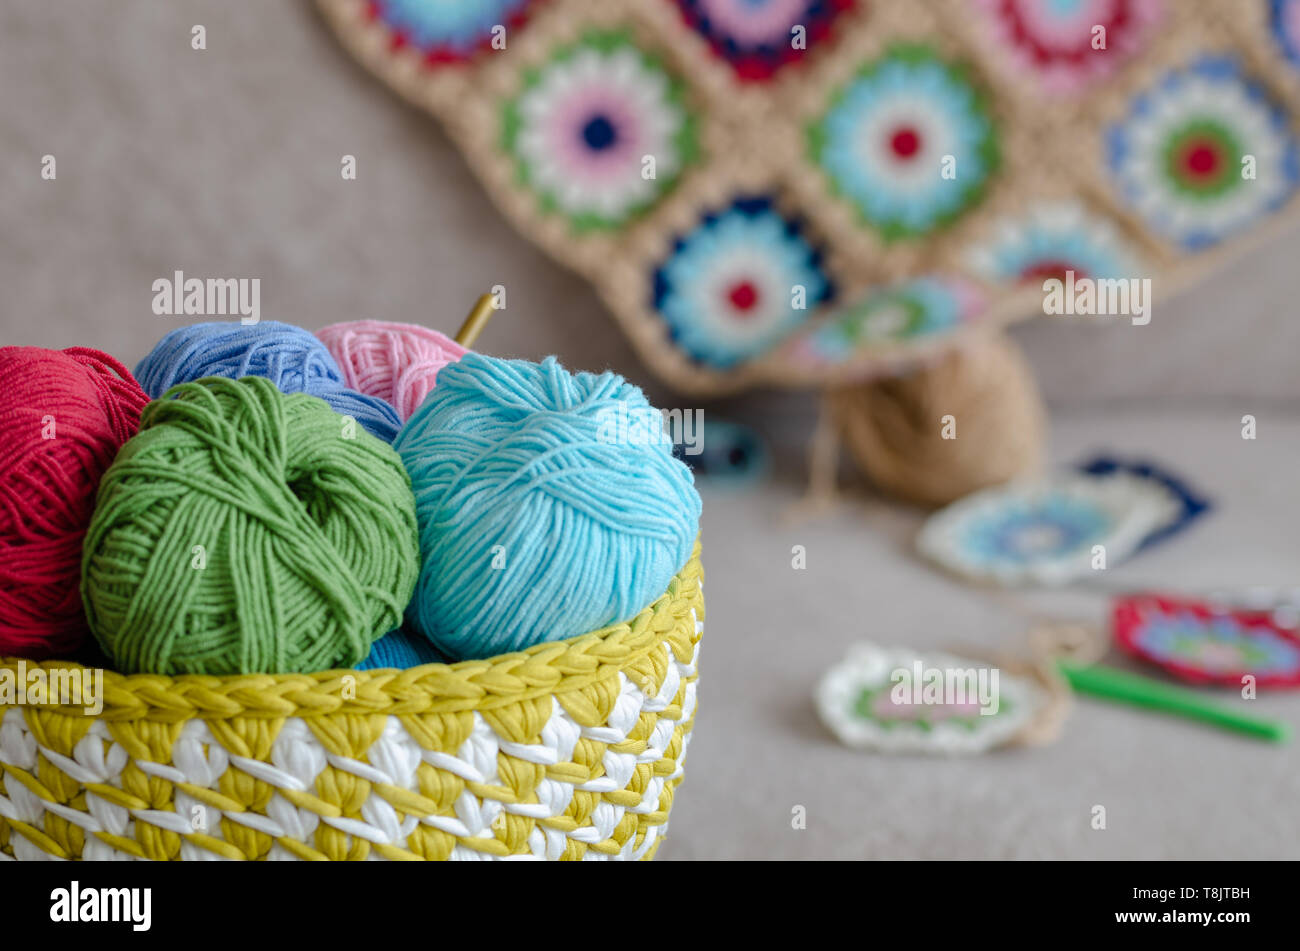 Multi Colored Baby Blanket And Colorful Yarns On Sofa Green Pink Cream Blue Red Color Yarns Scissors Are On The Sofa Stock Photo Alamy